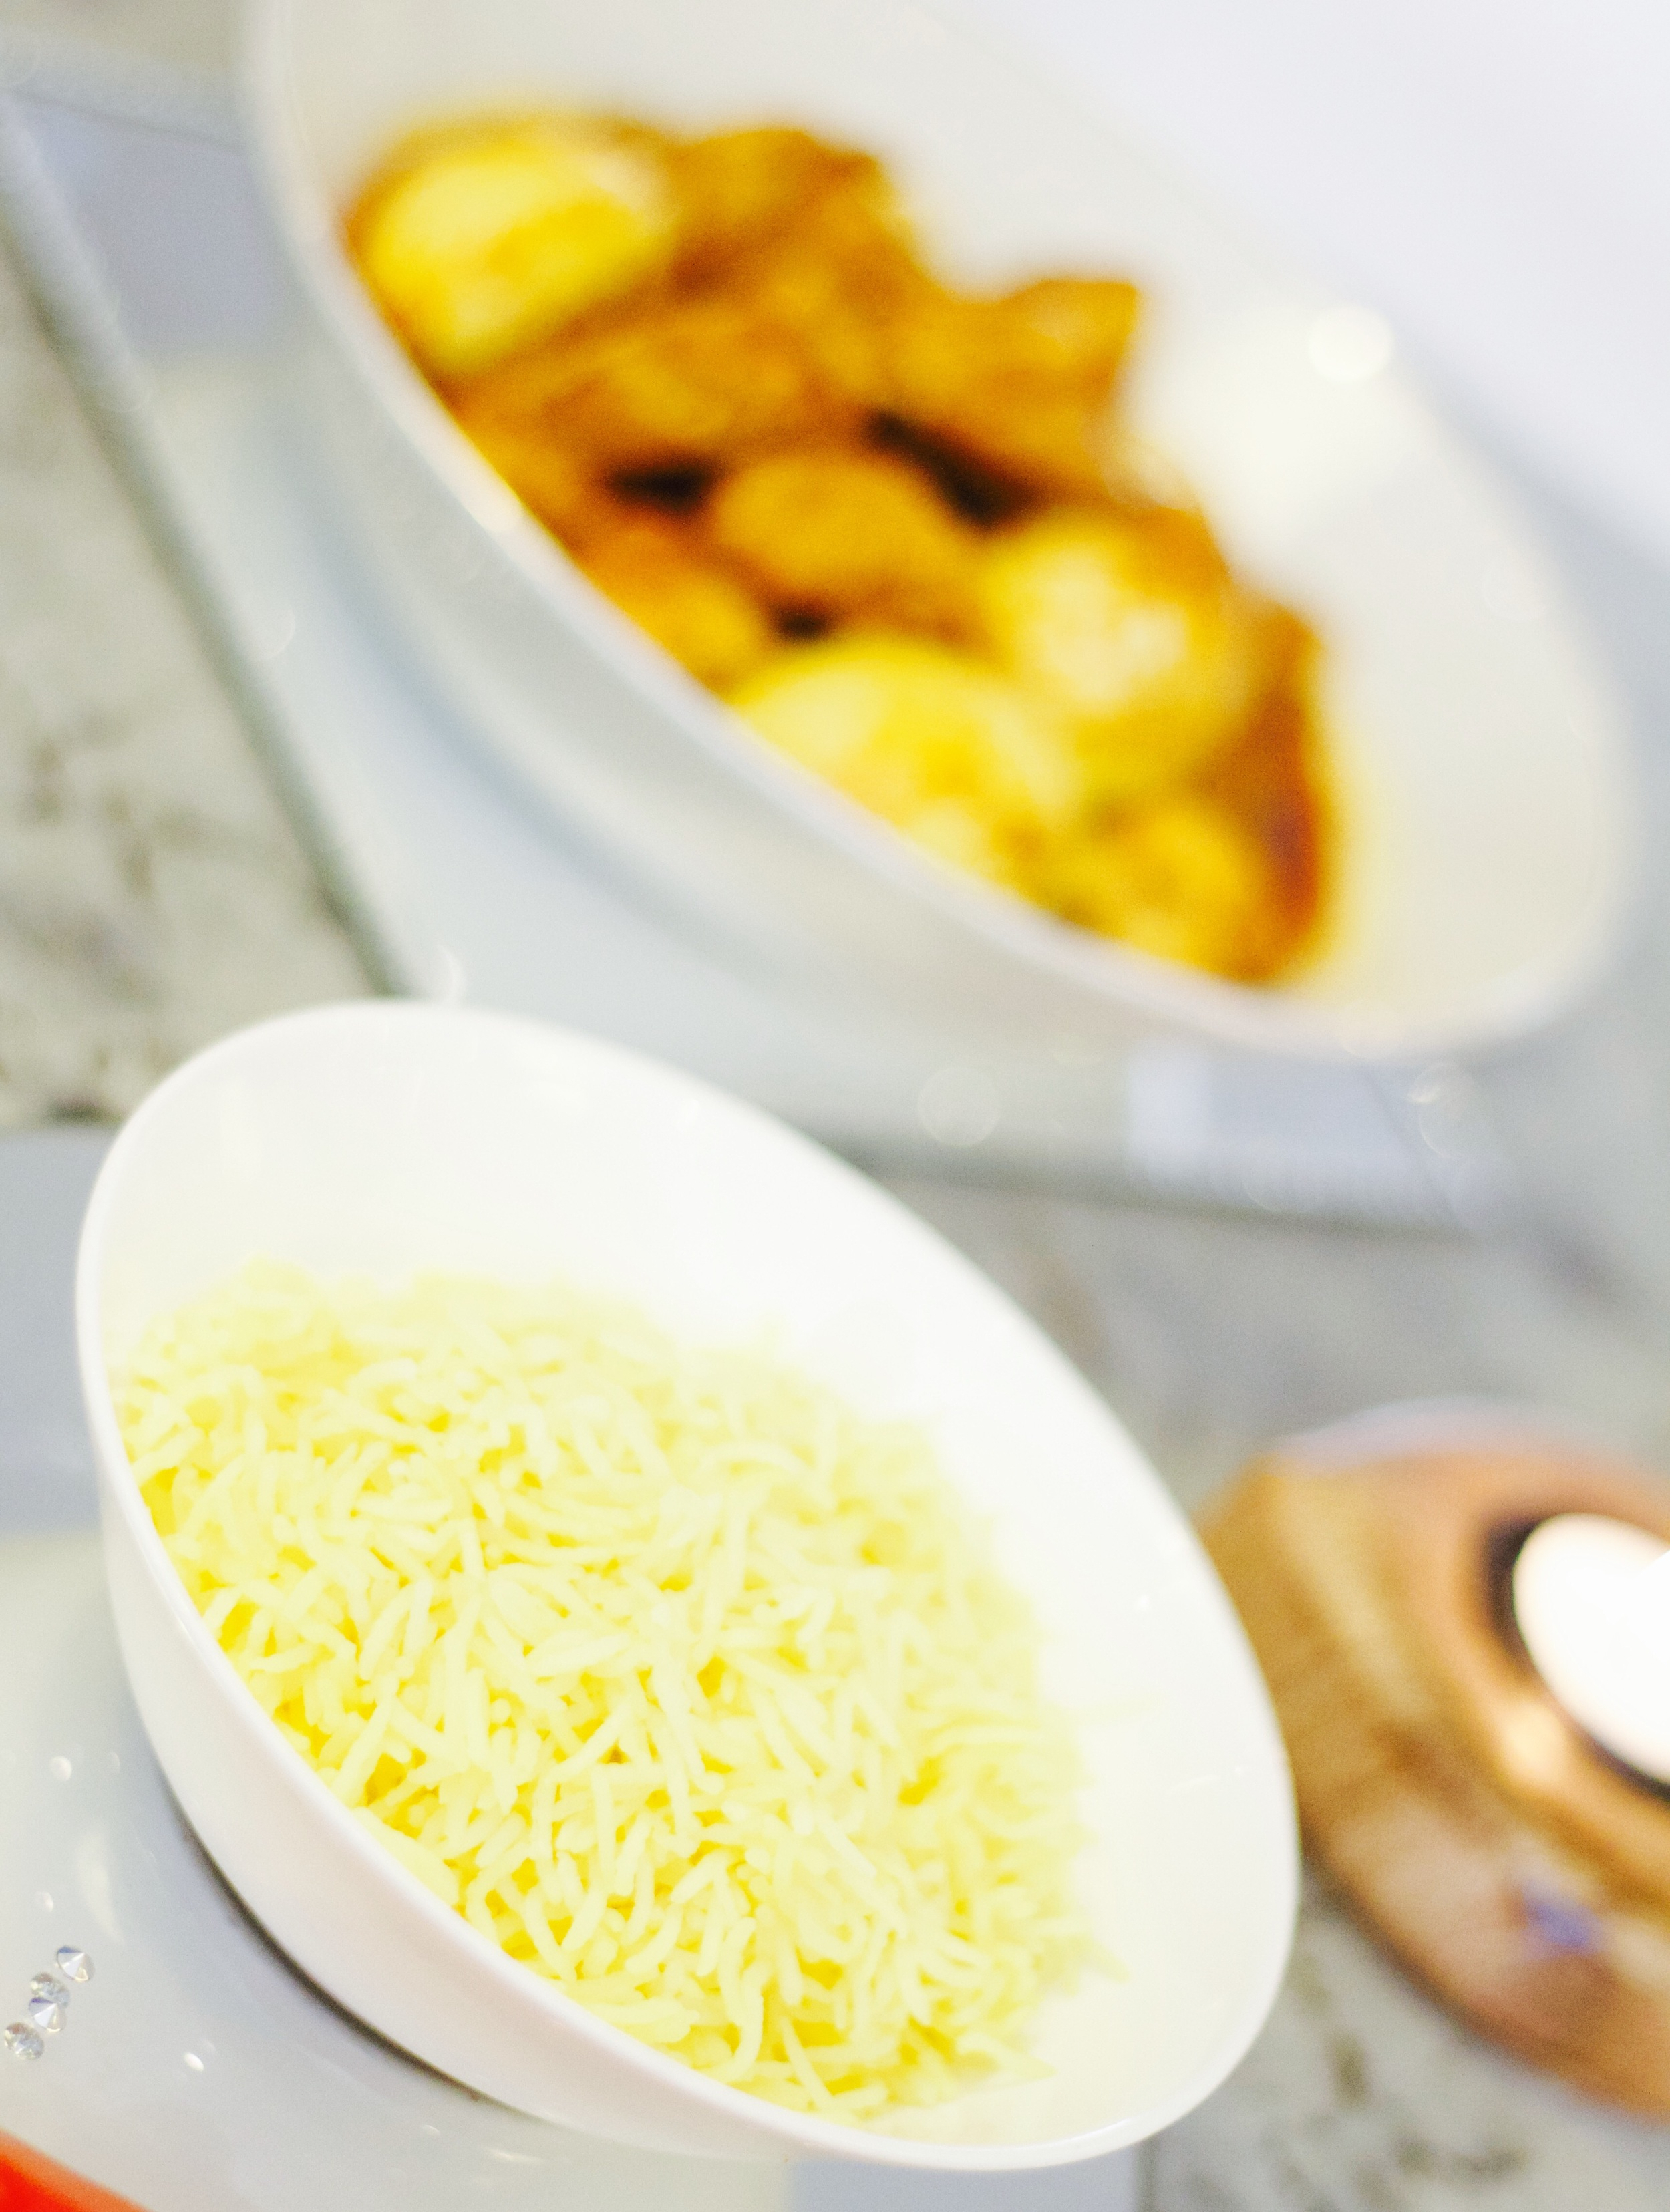 We served ours with some Of Bongo's saffron, cardamom and clove basmati rice